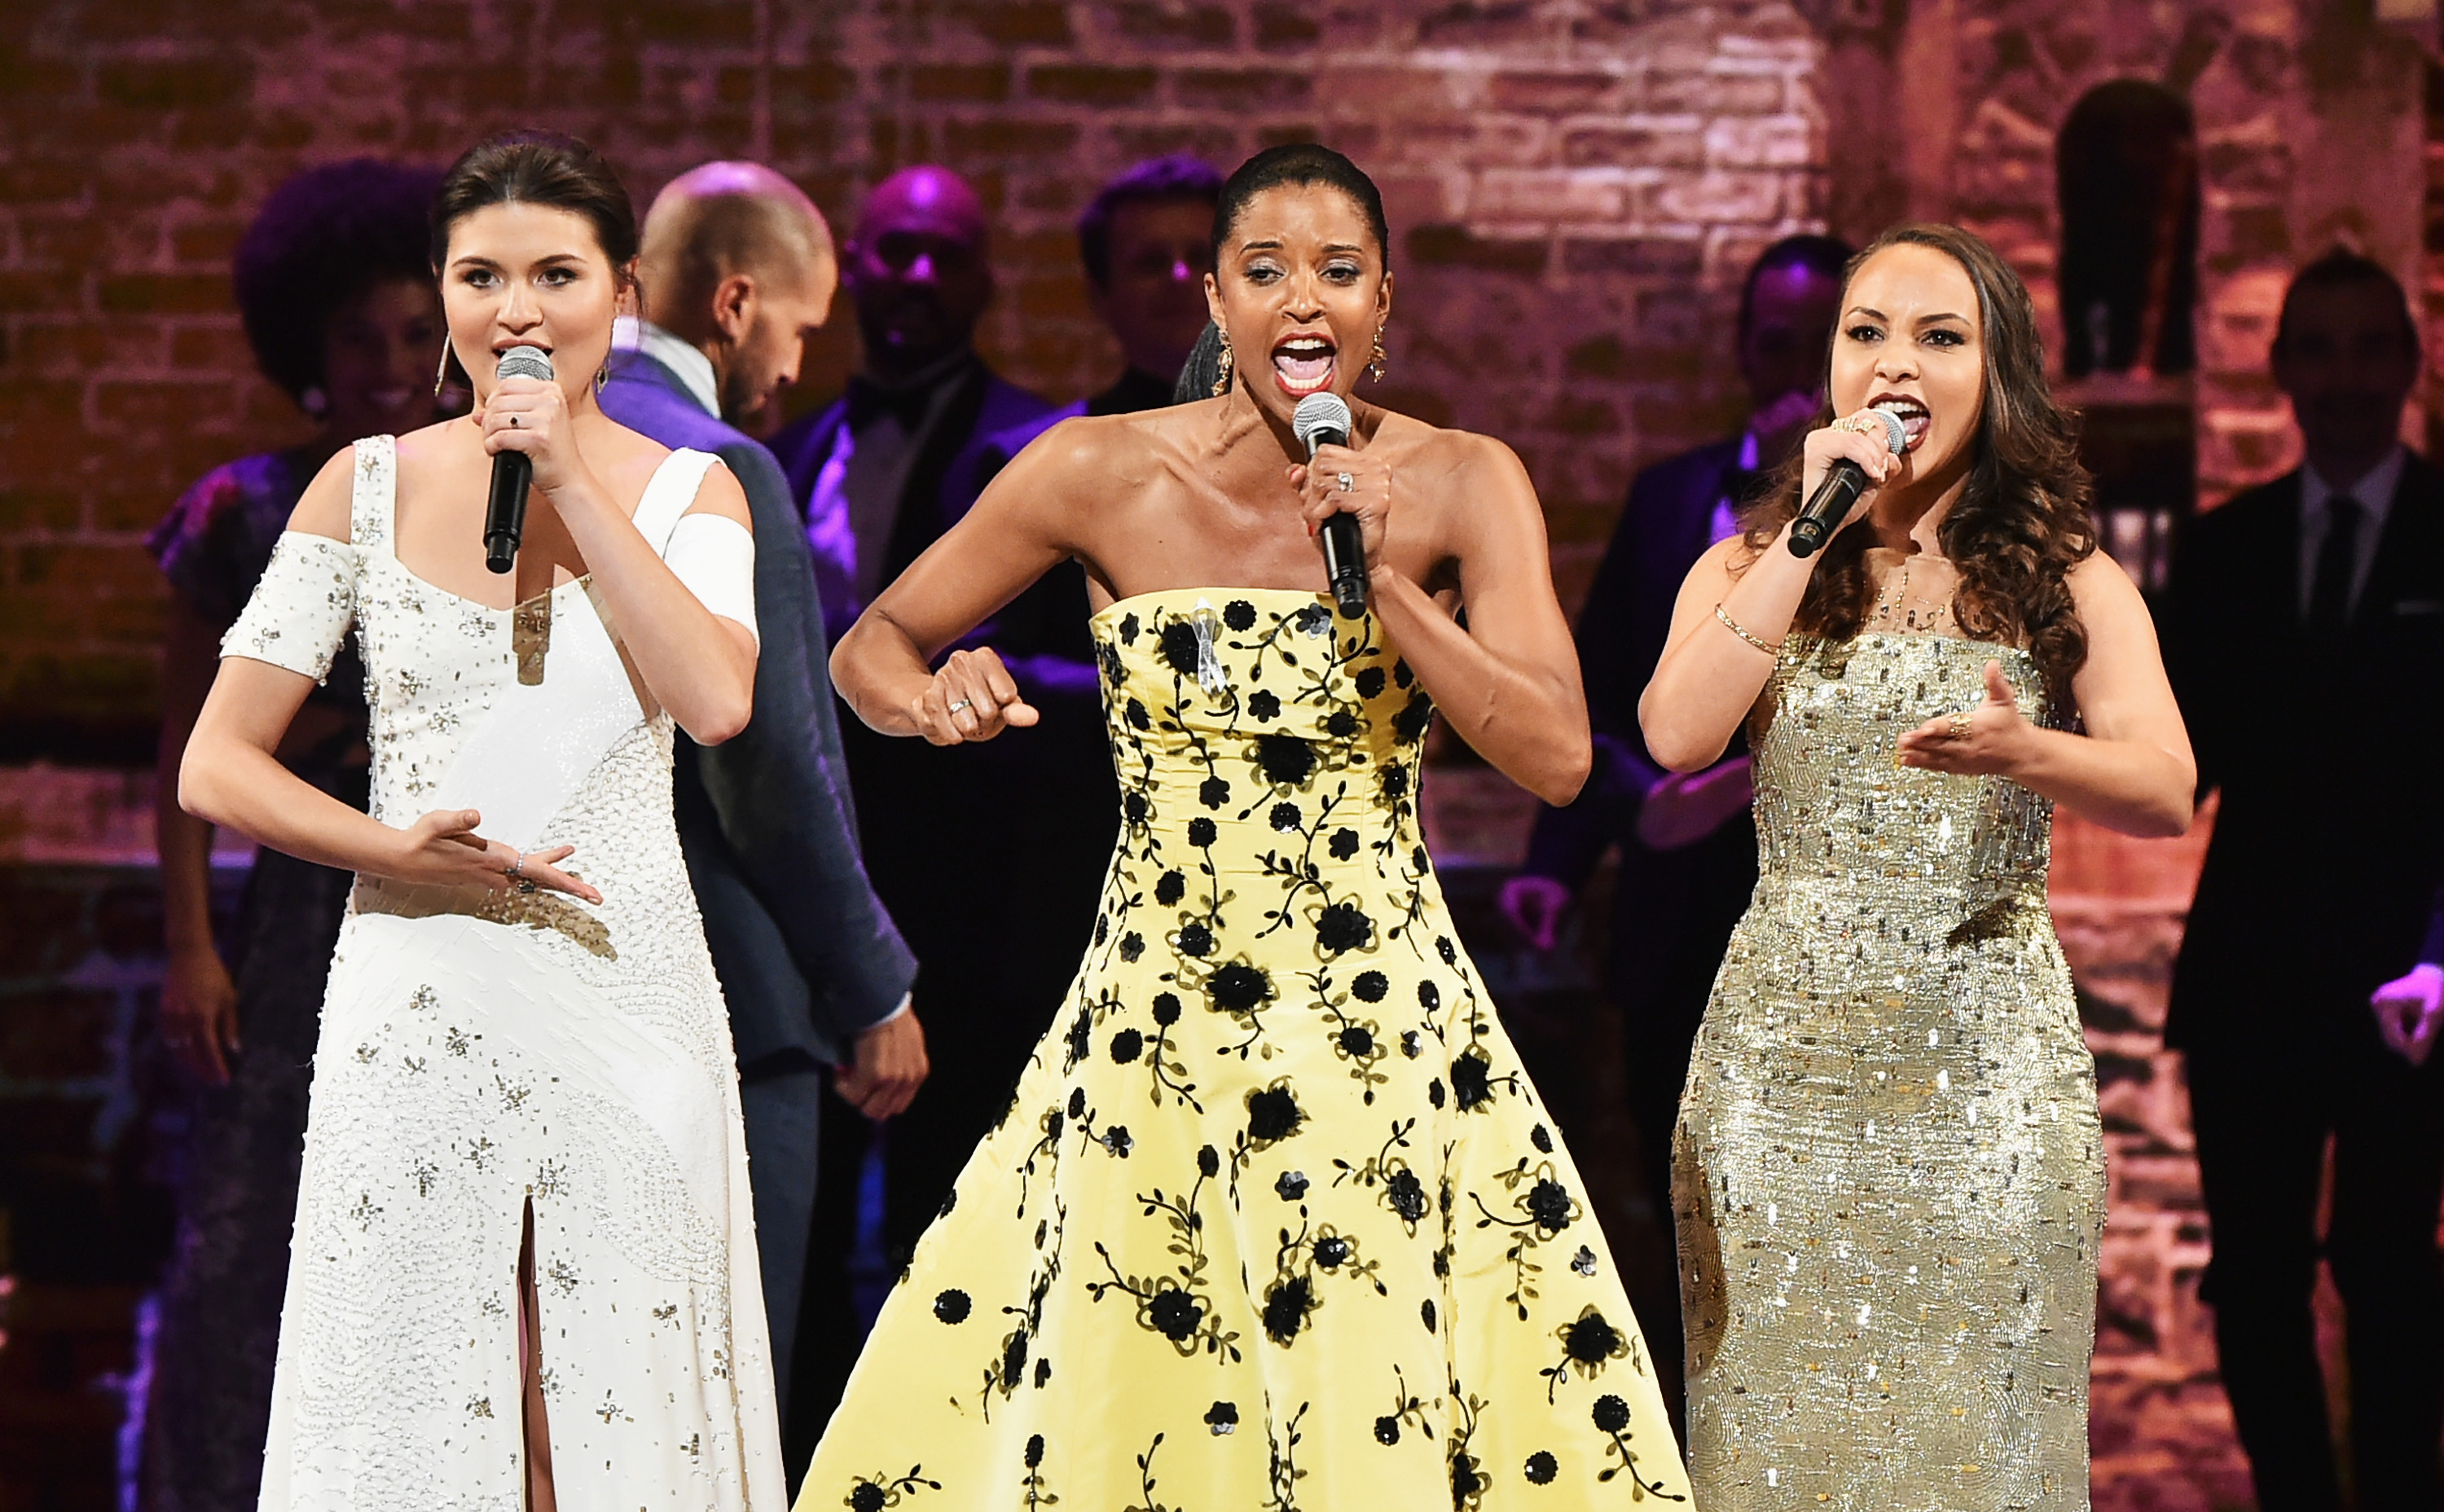 Phillipa Soo, Renee Elise Goldsberry and Jasmine Cephas Jones perform onstage during the 70th Annual Tony Awards at The Beacon Theatre on June 12, 2016 in New York City